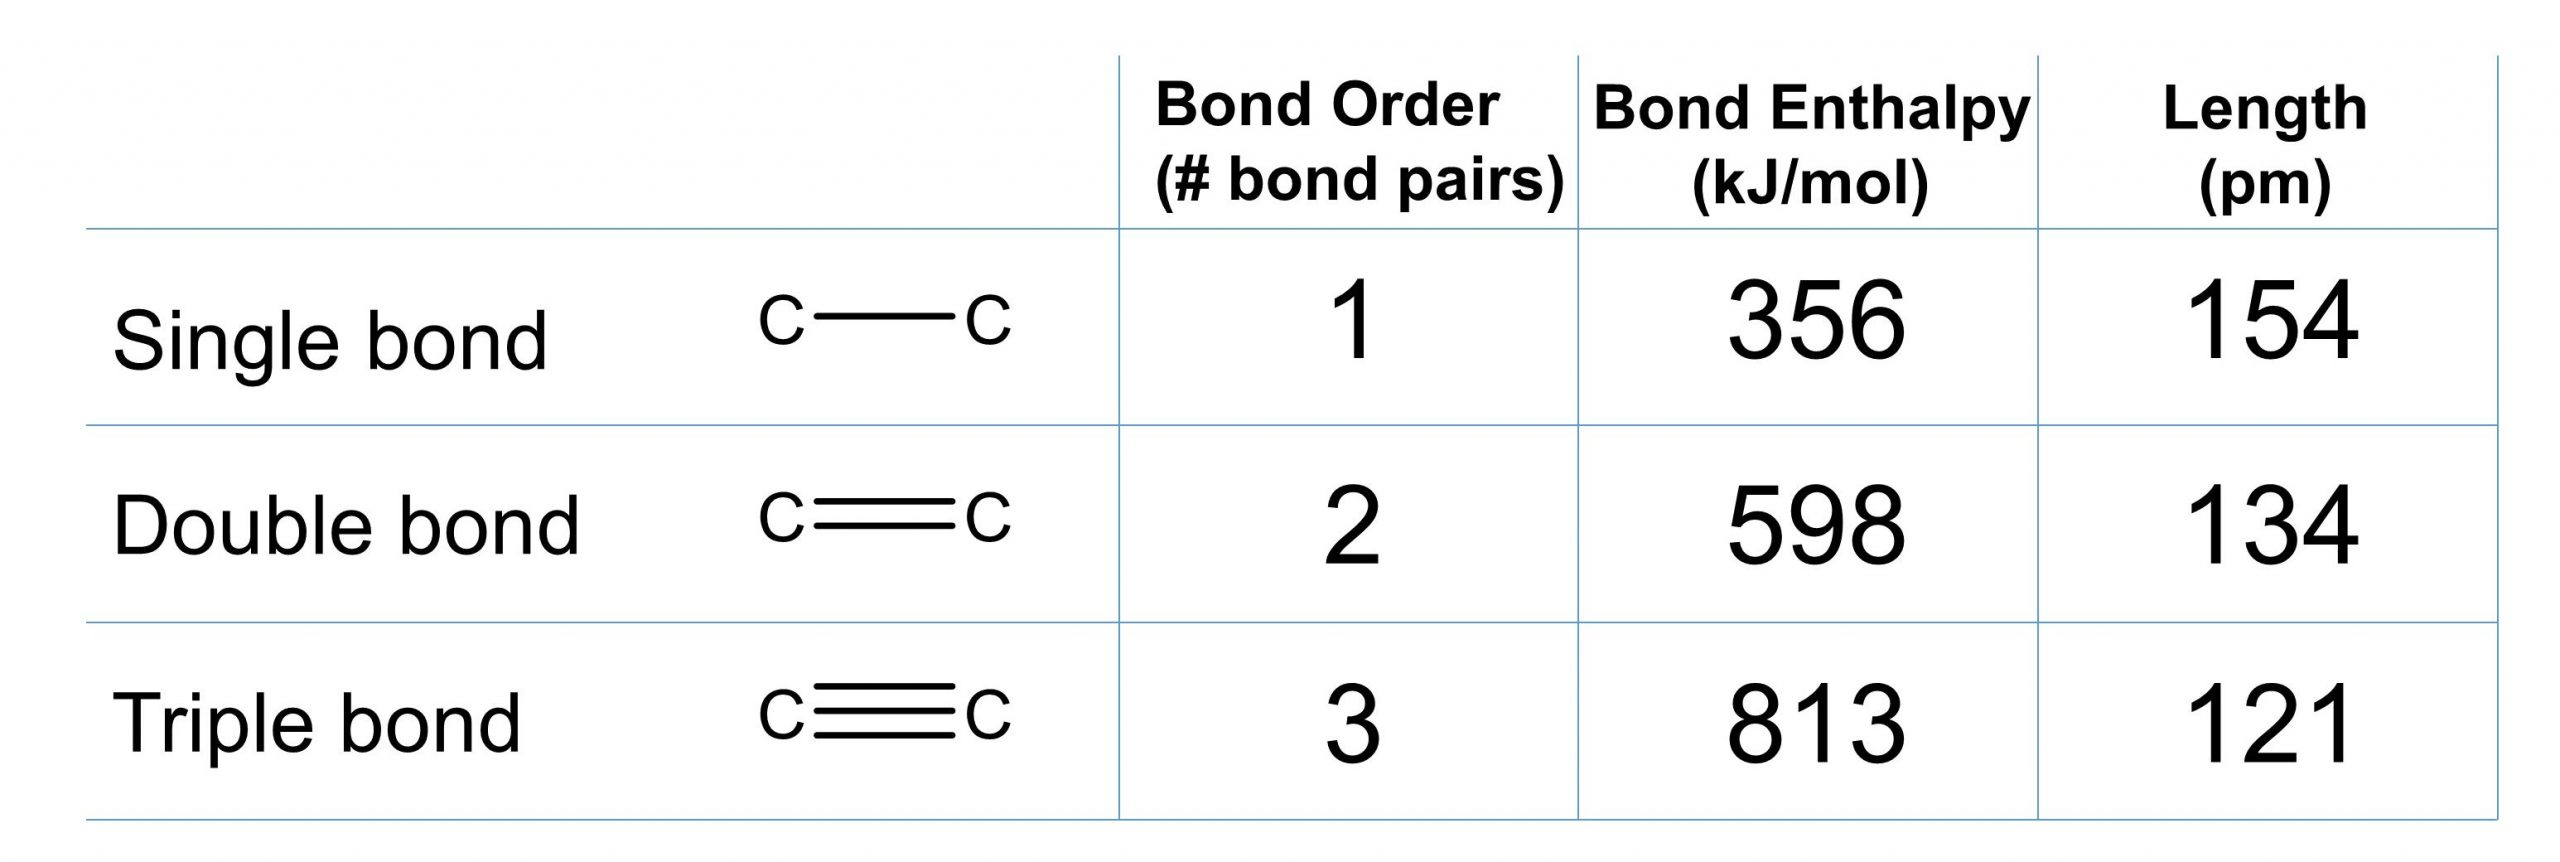 A table is shown for bond enthalpy and length. The first row is for a carbon carbon single bond. The bond order (number bond pairs) is 1. The bond enthalpy is 356 kilojoules per mole and the length is 154 picometers. The second row is for a carbon carbon double bond. The bond order is 2. The bond enthalpy is 598 kilojoules per mole. The bond length is 134 picometers. The third row is for a carbon carbon triple bond. The bond order is 3. The bond enthalpy is 813 kilojoule per mole and the length is 121 picometers.